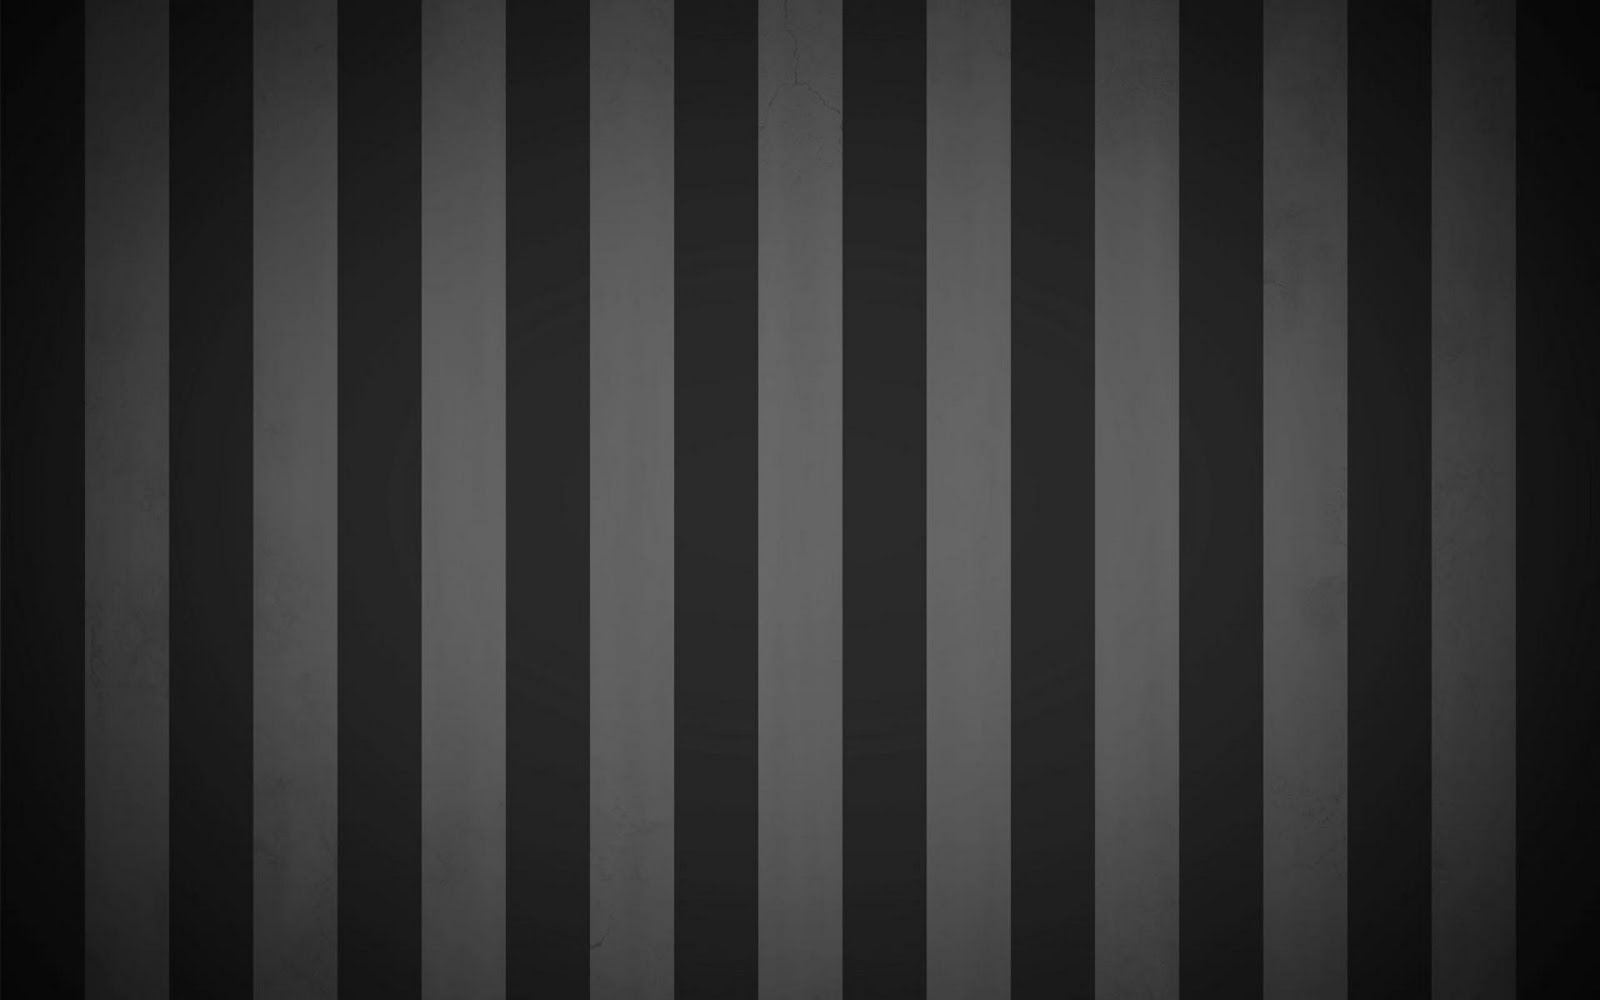 Striped Hd Black Grey Pattern Hd Wallpapers | Wallpaper